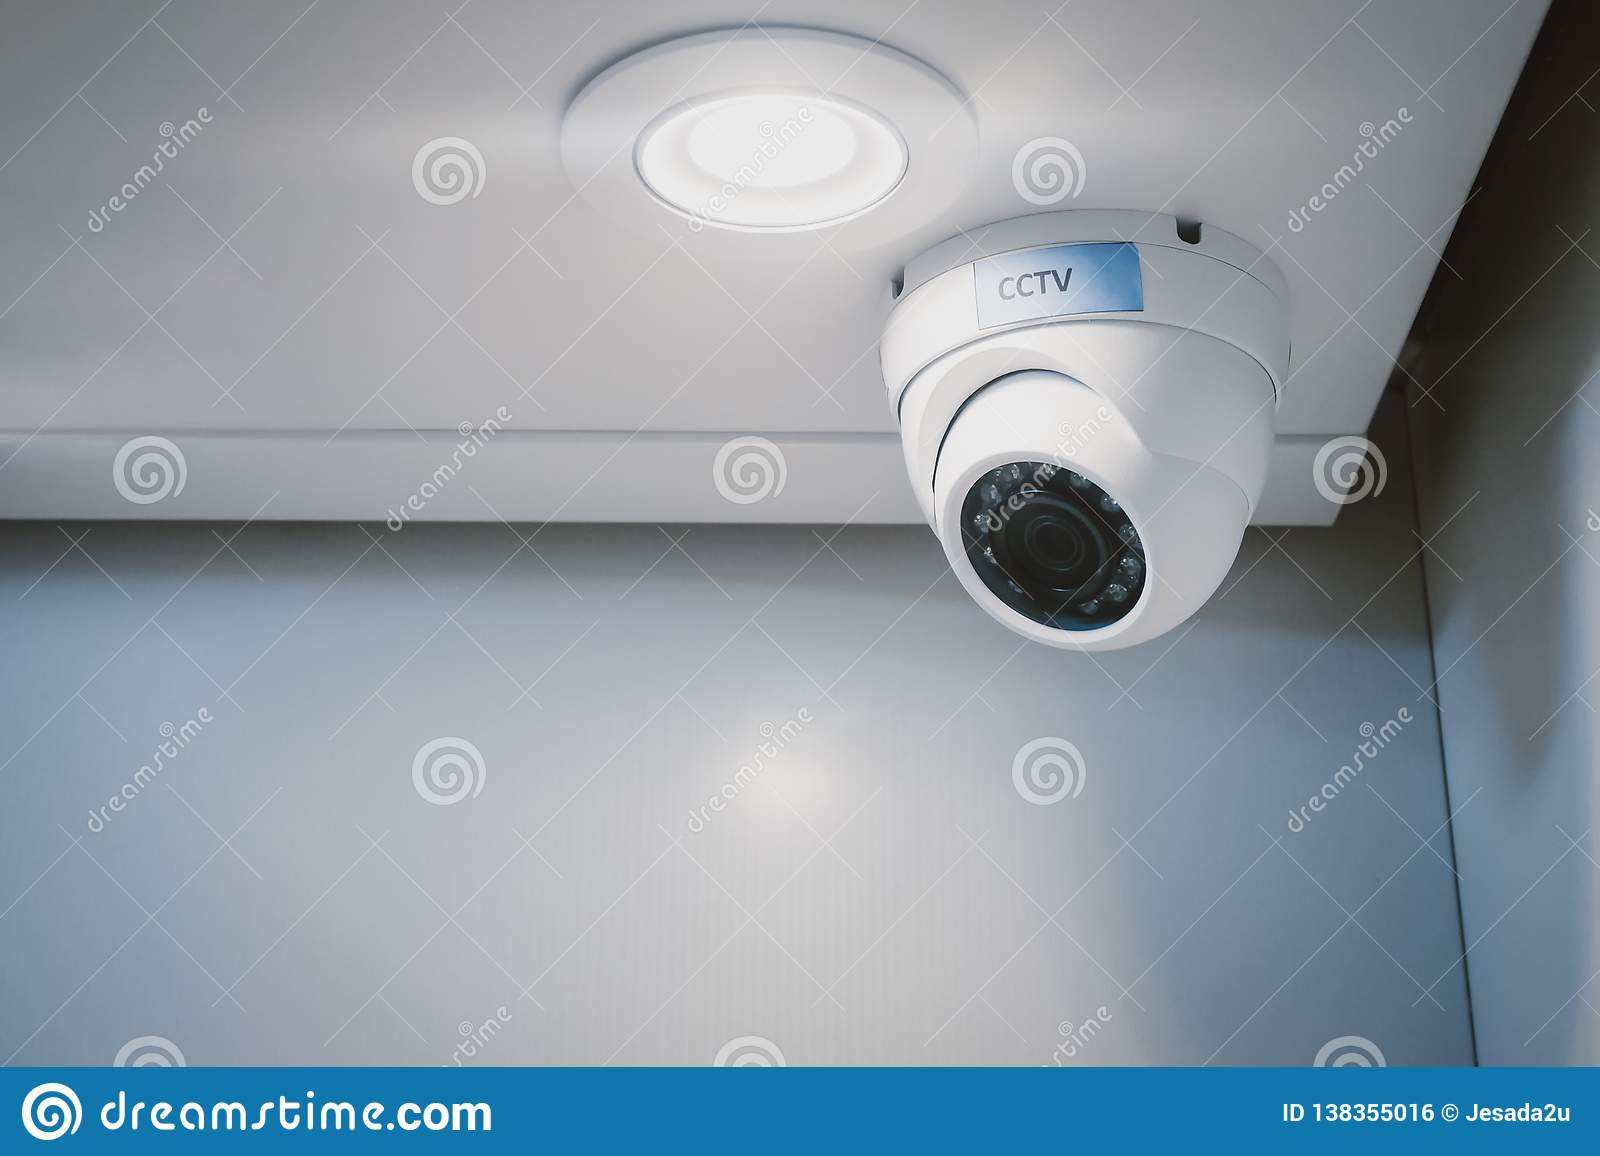 CCTV security camera on wall in the home office for surveillance monitoring home guard system.